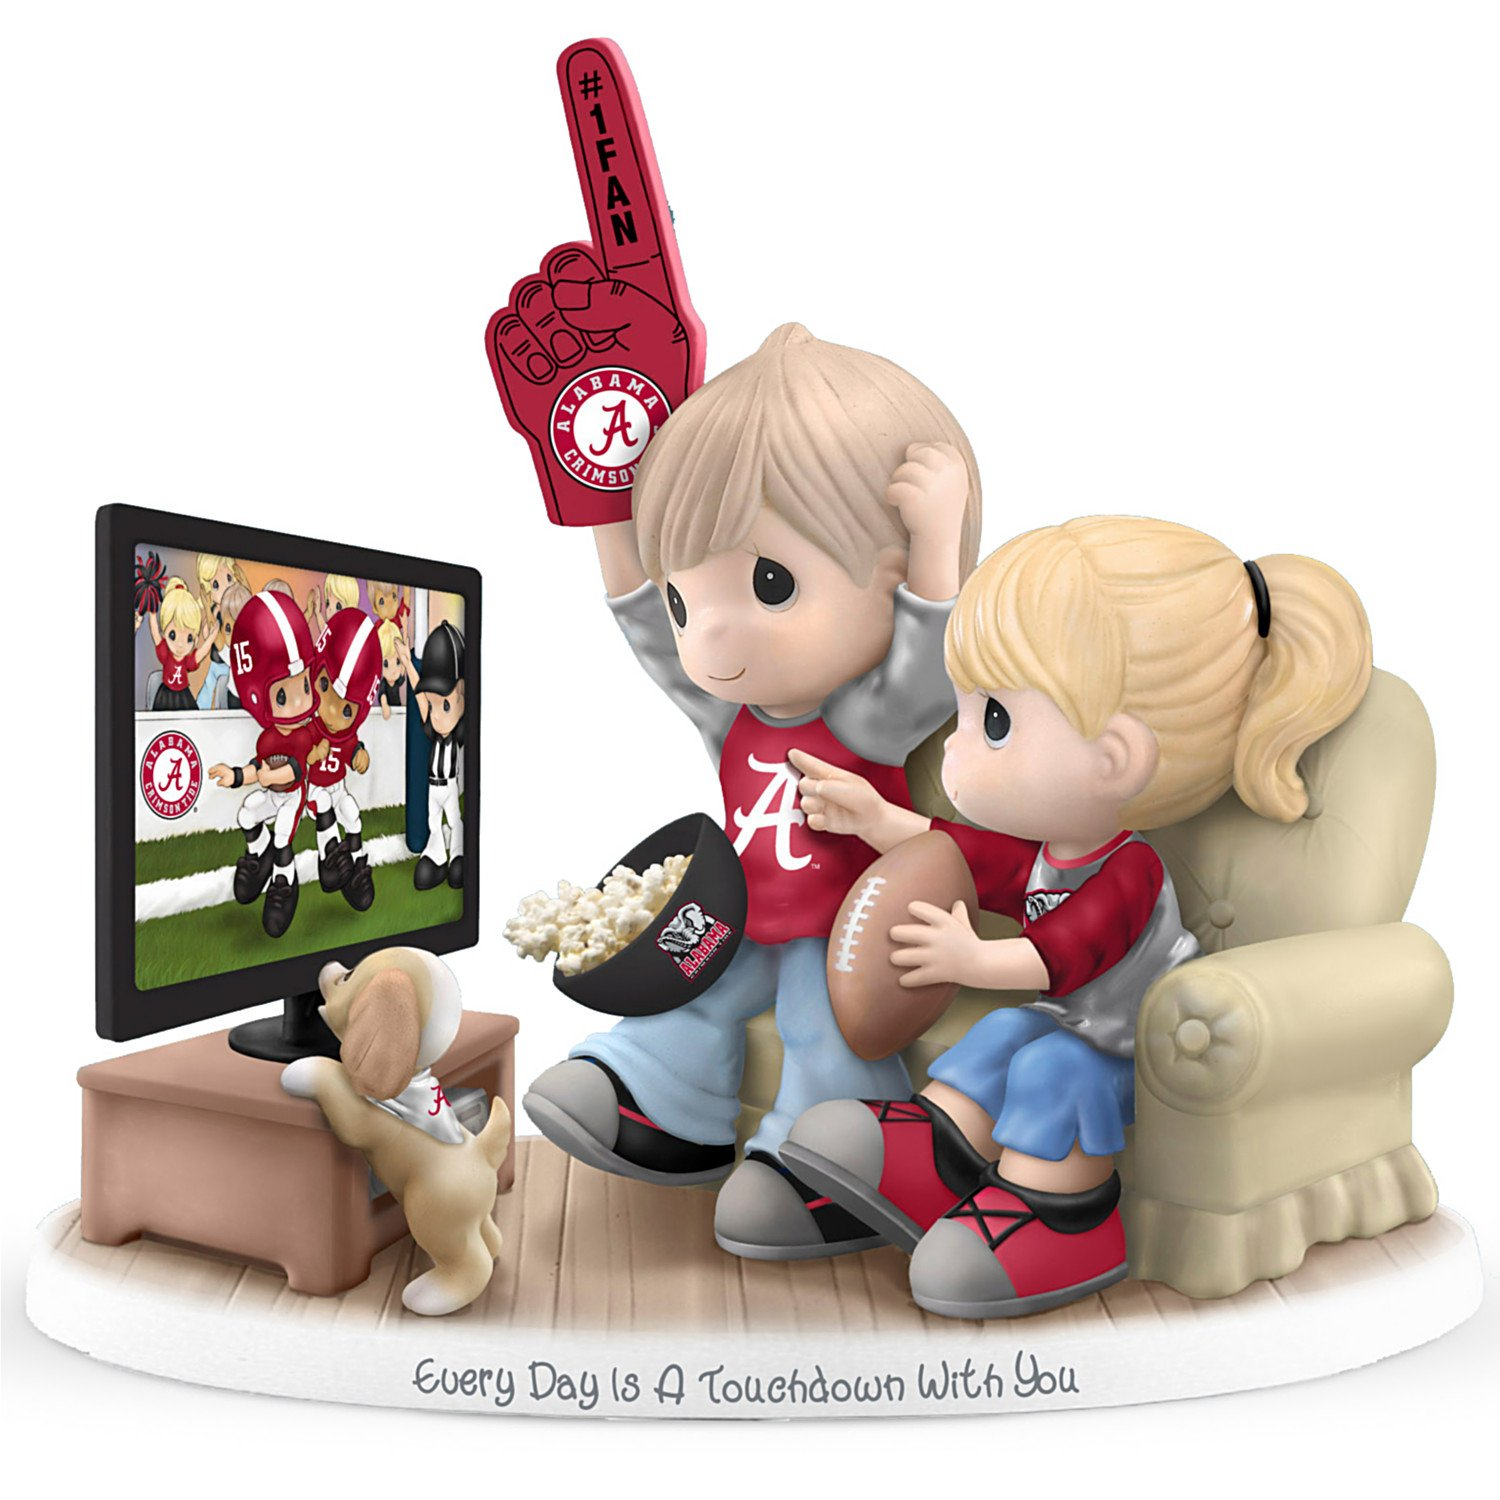 Precious Moments Every Day Is A Touchdown With You Alabama Crimson Tide Figurine by The Hamilton Collection by The Hamilton Collection